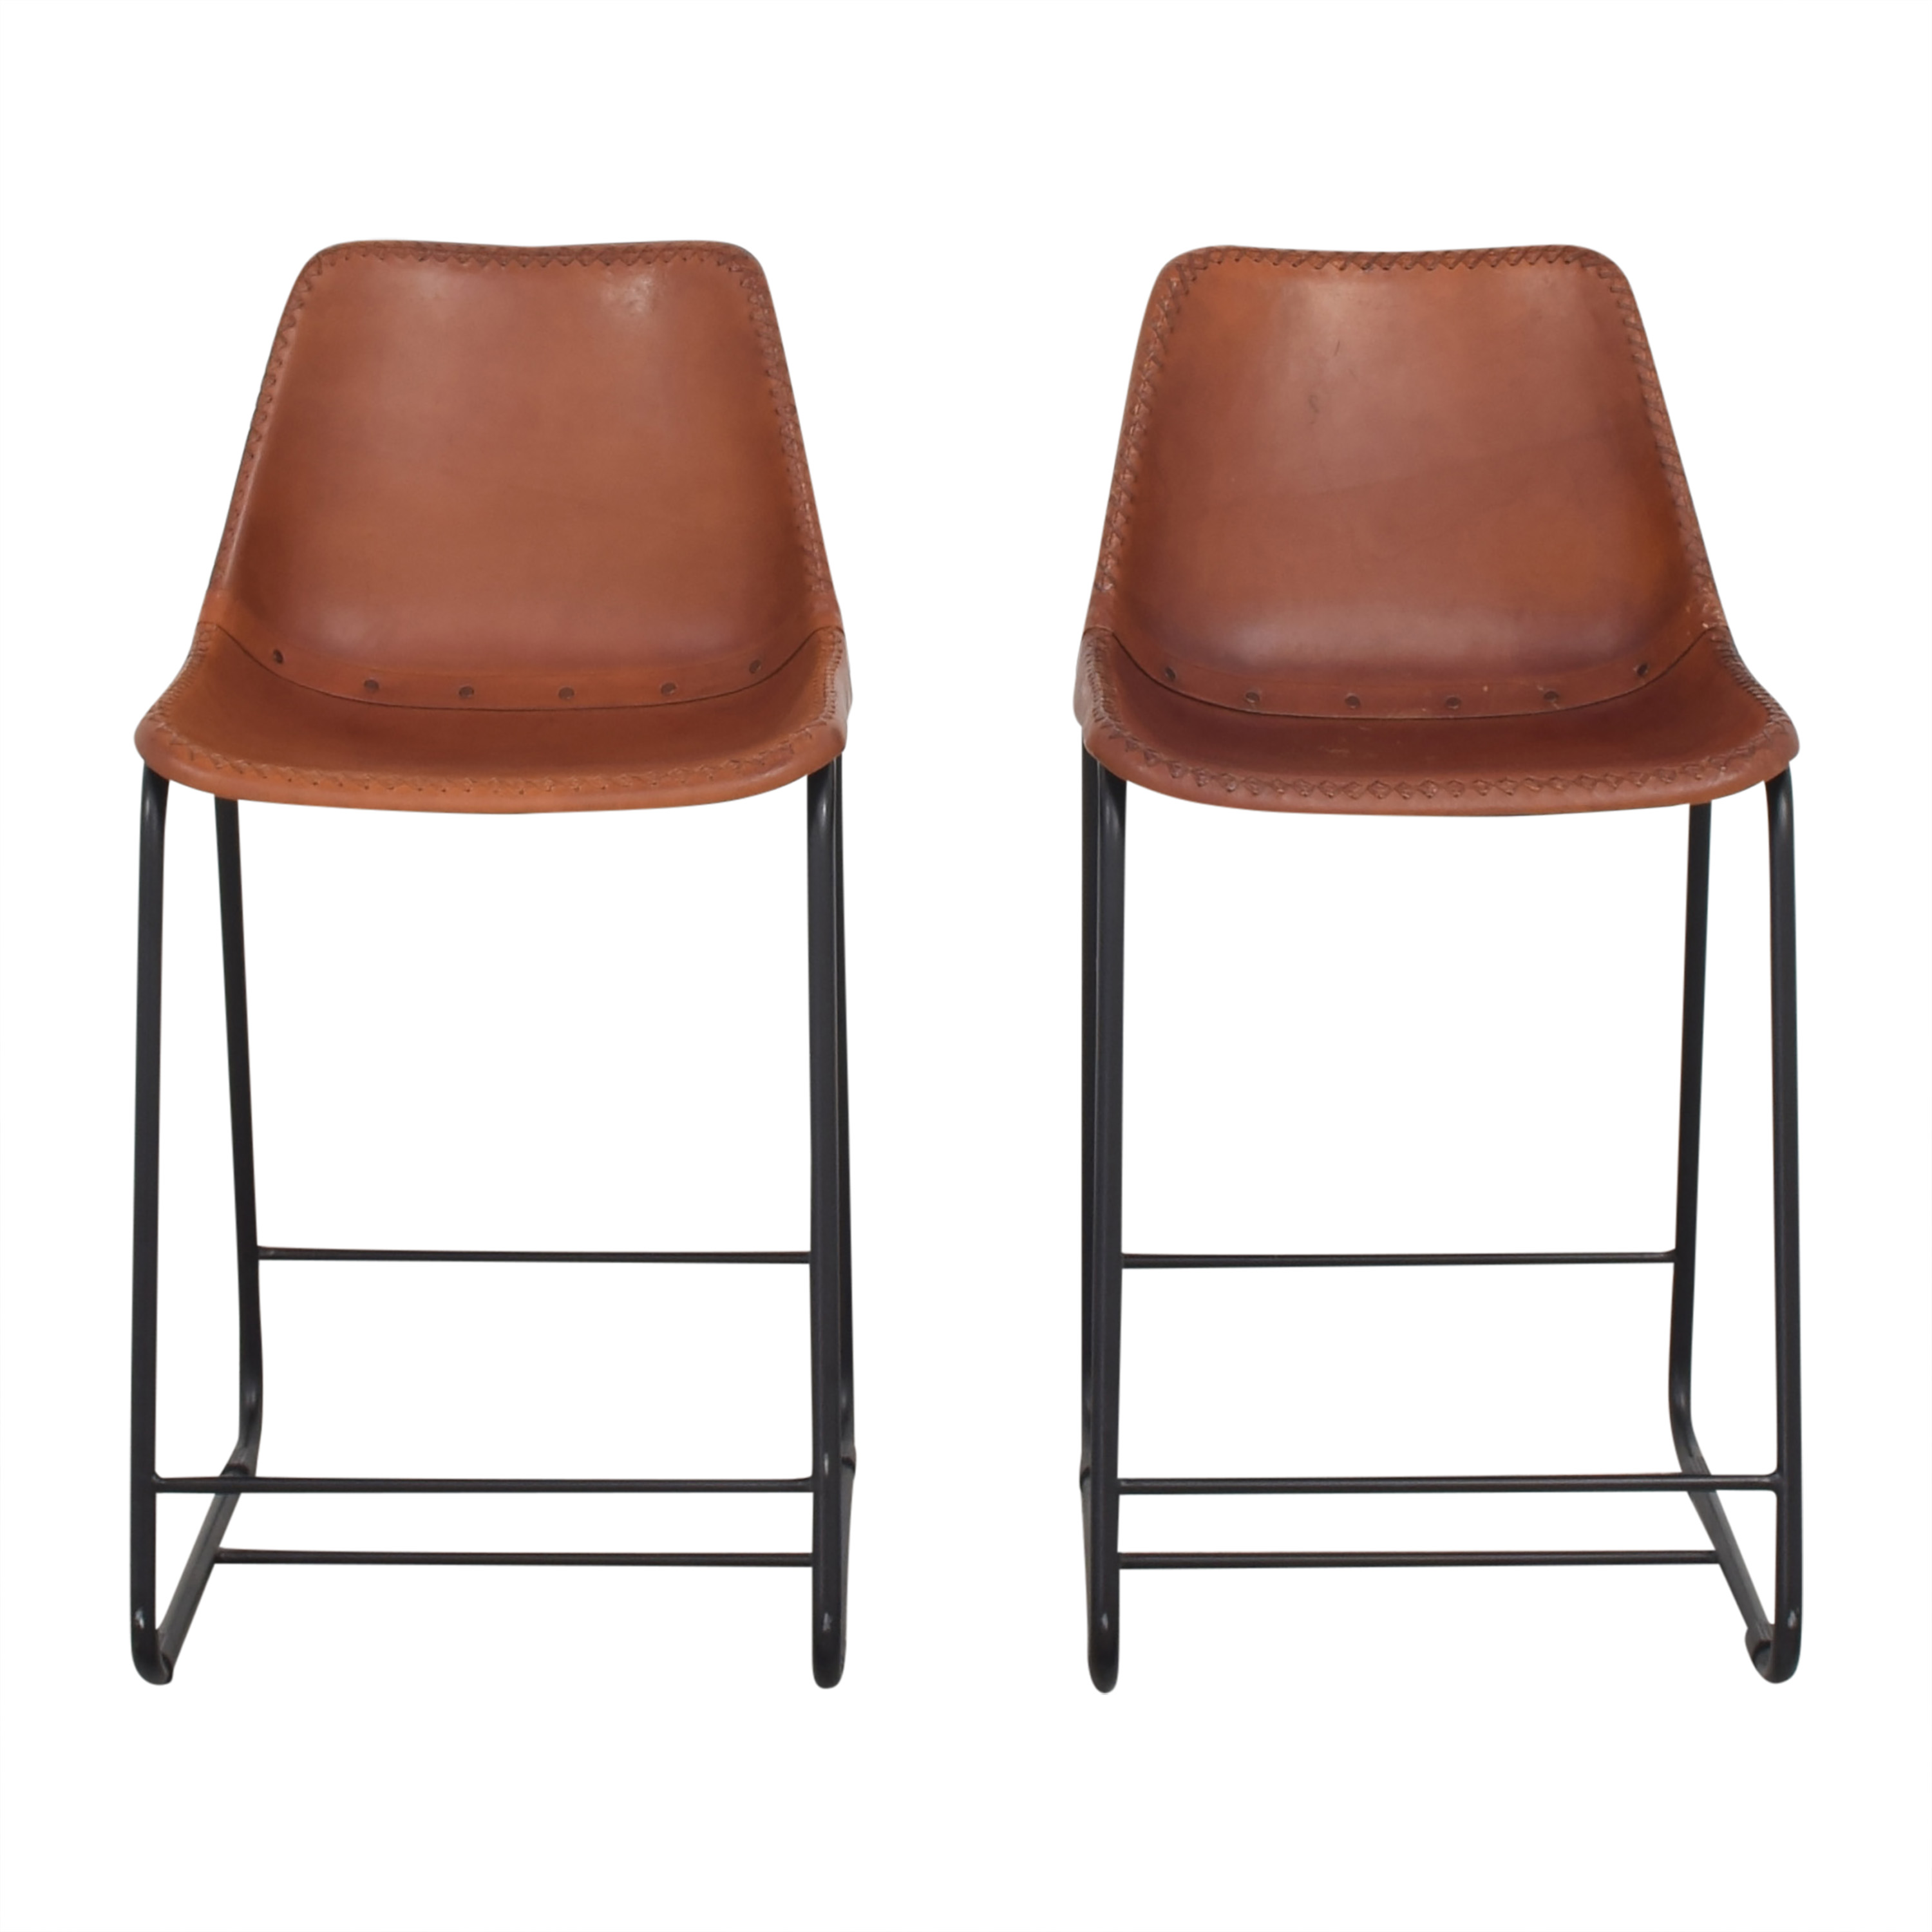 CB2 CB2 Roadhouse Counter Stools ma